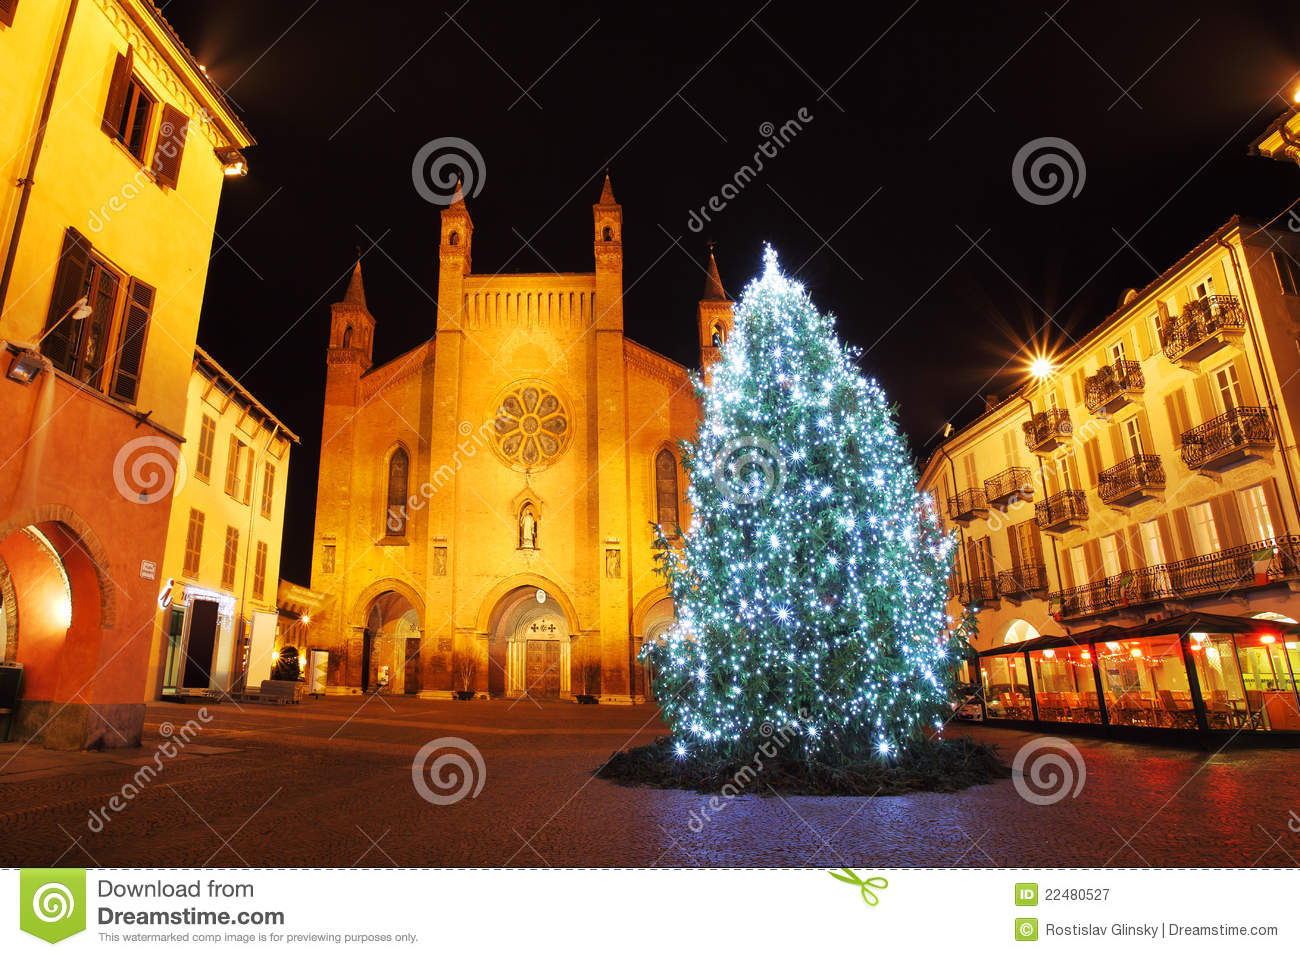 Historical Stock Prices >> Christmas Tree On Central Plaza. Alba, Italy. Royalty Free Stock Photography - Image: 22480527